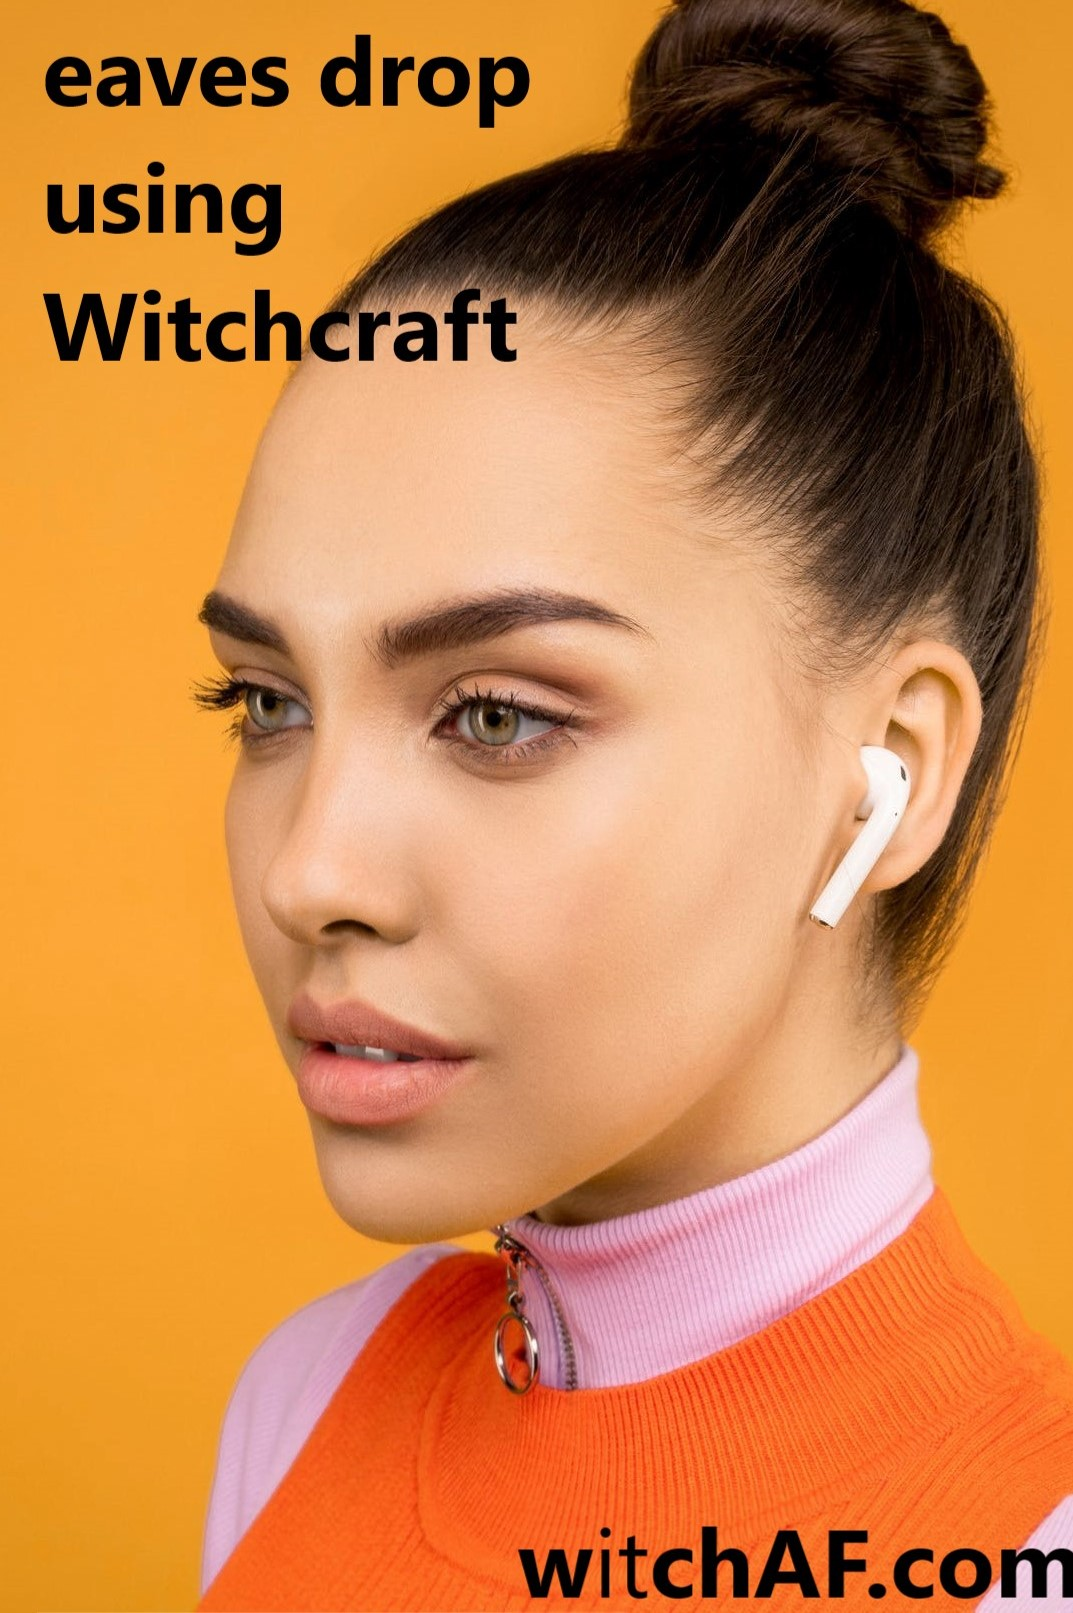 How to eavesdrop on someone using Witchcraft